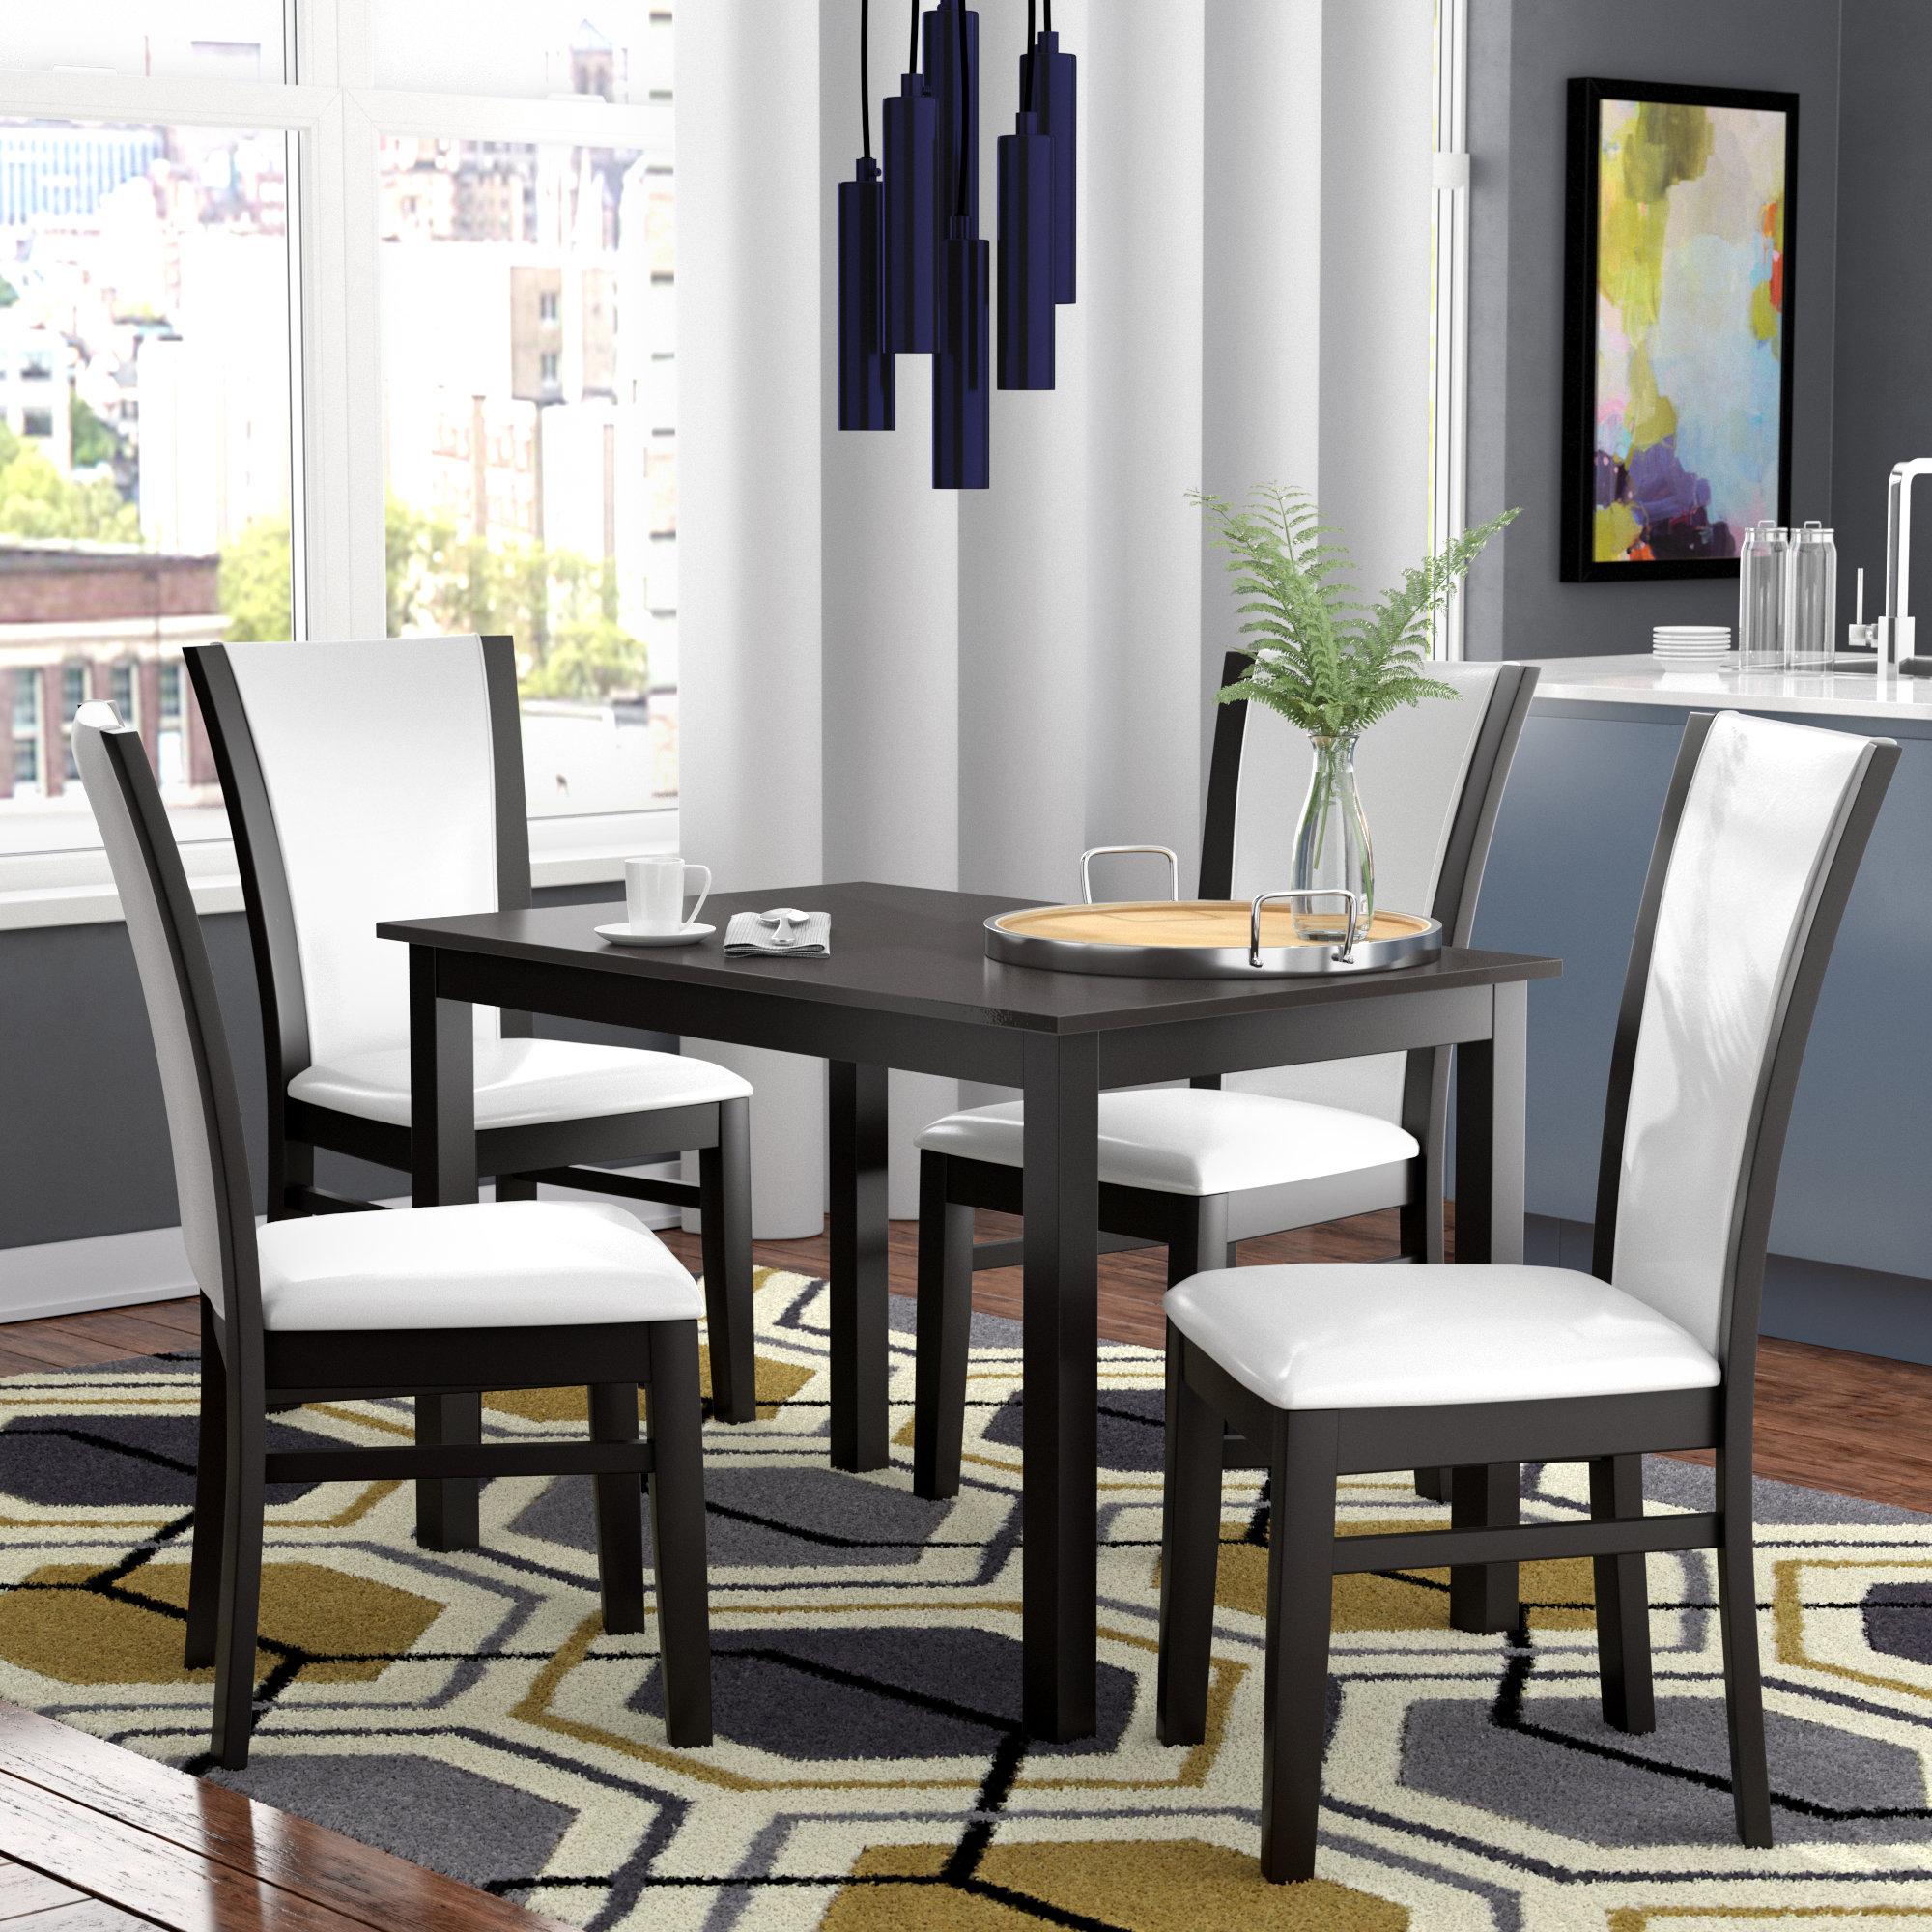 Ontonagon Modern And Contemporary 5 Piece Breakfast Nook Dining Set Within Newest 5 Piece Breakfast Nook Dining Sets (View 2 of 20)